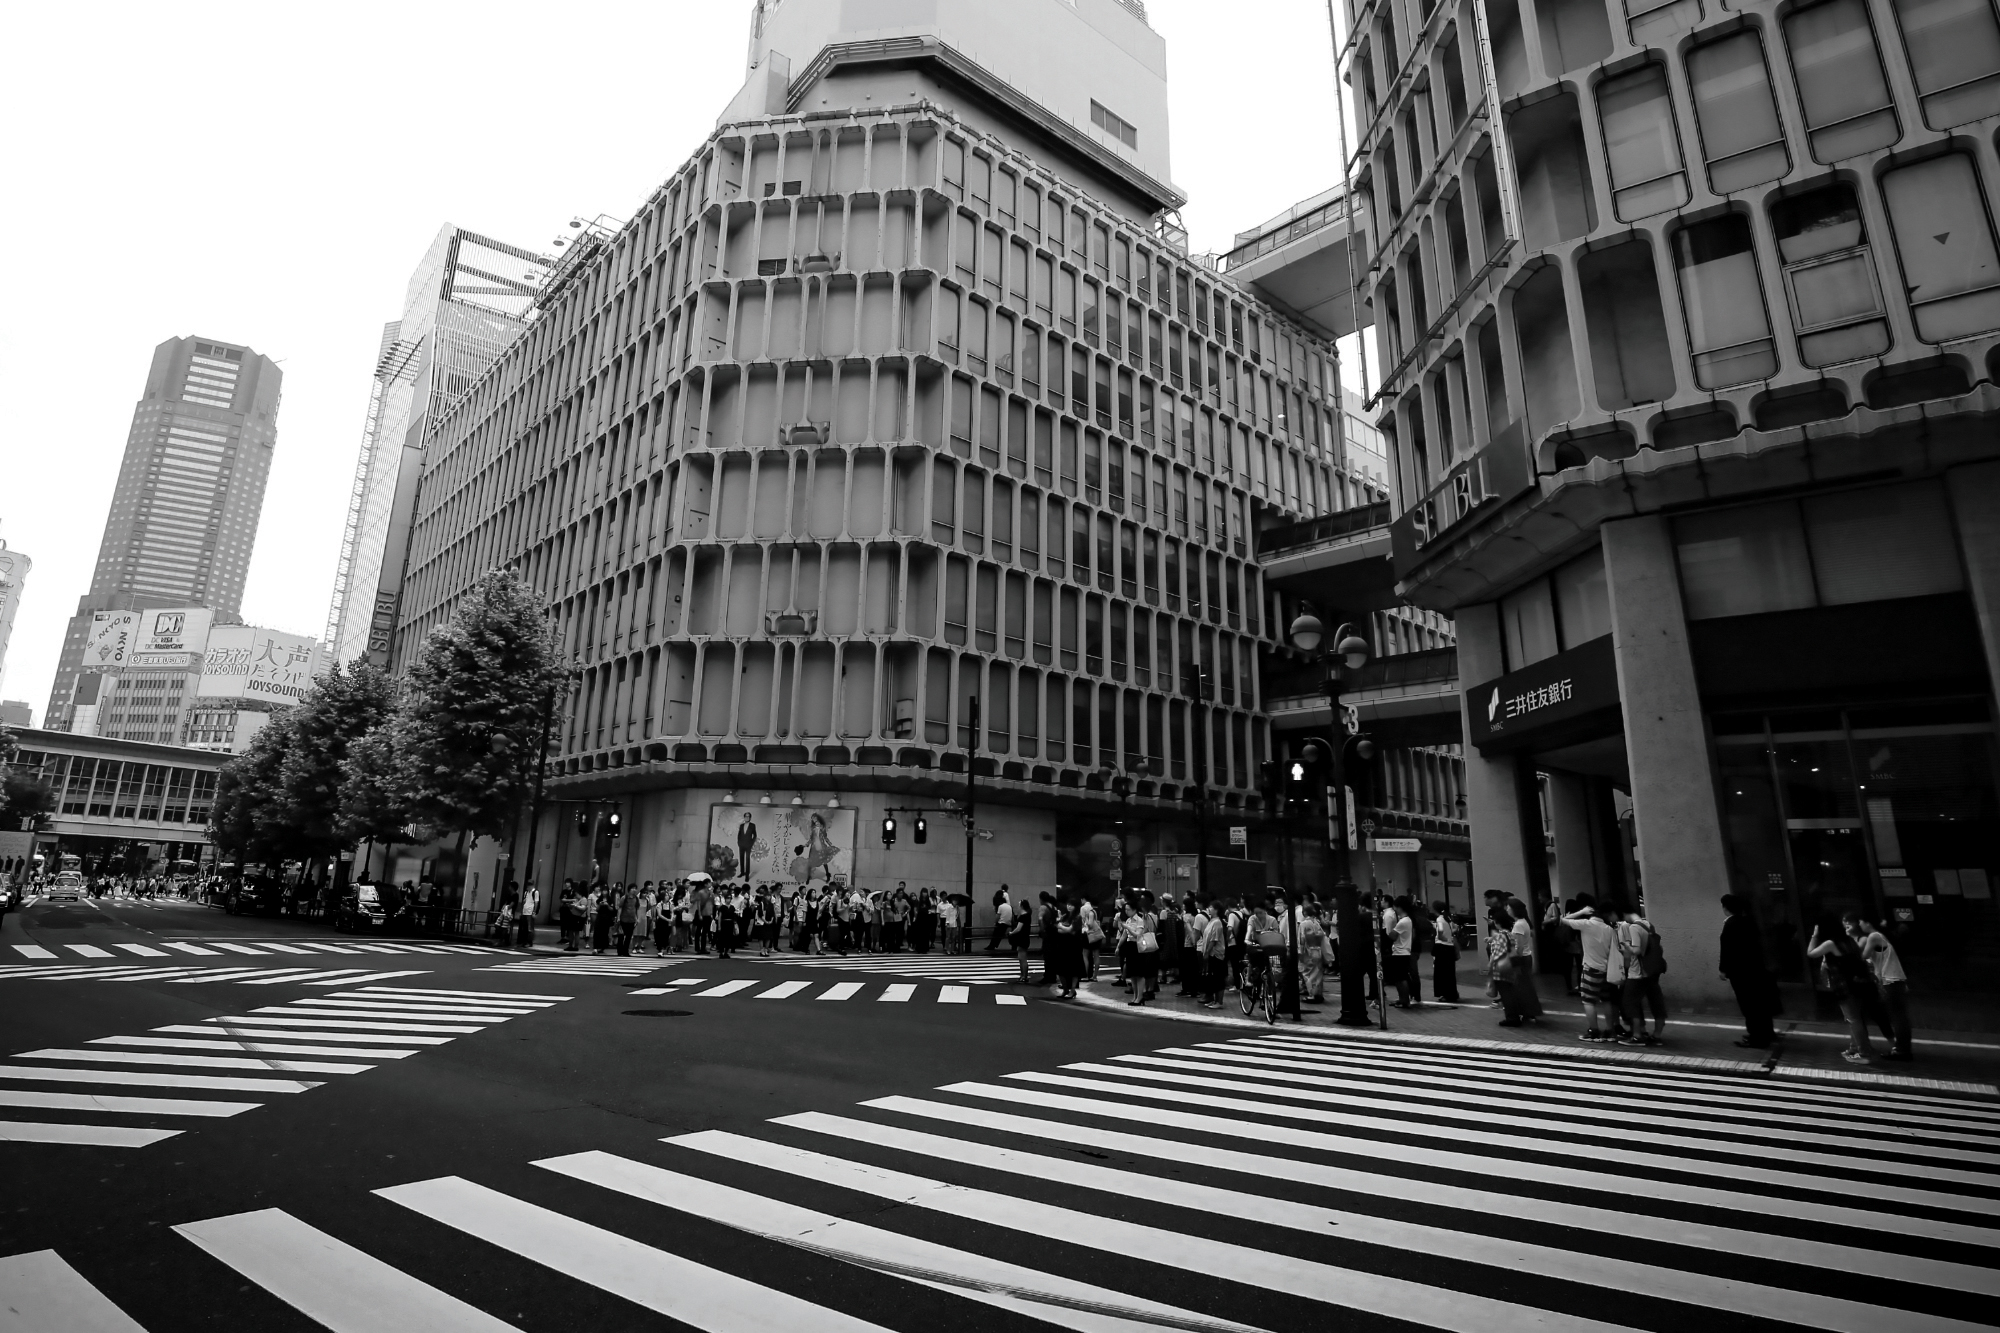 Black and white photograph taken of a street in Tokyo, Japan with many different crosswalk options on the road